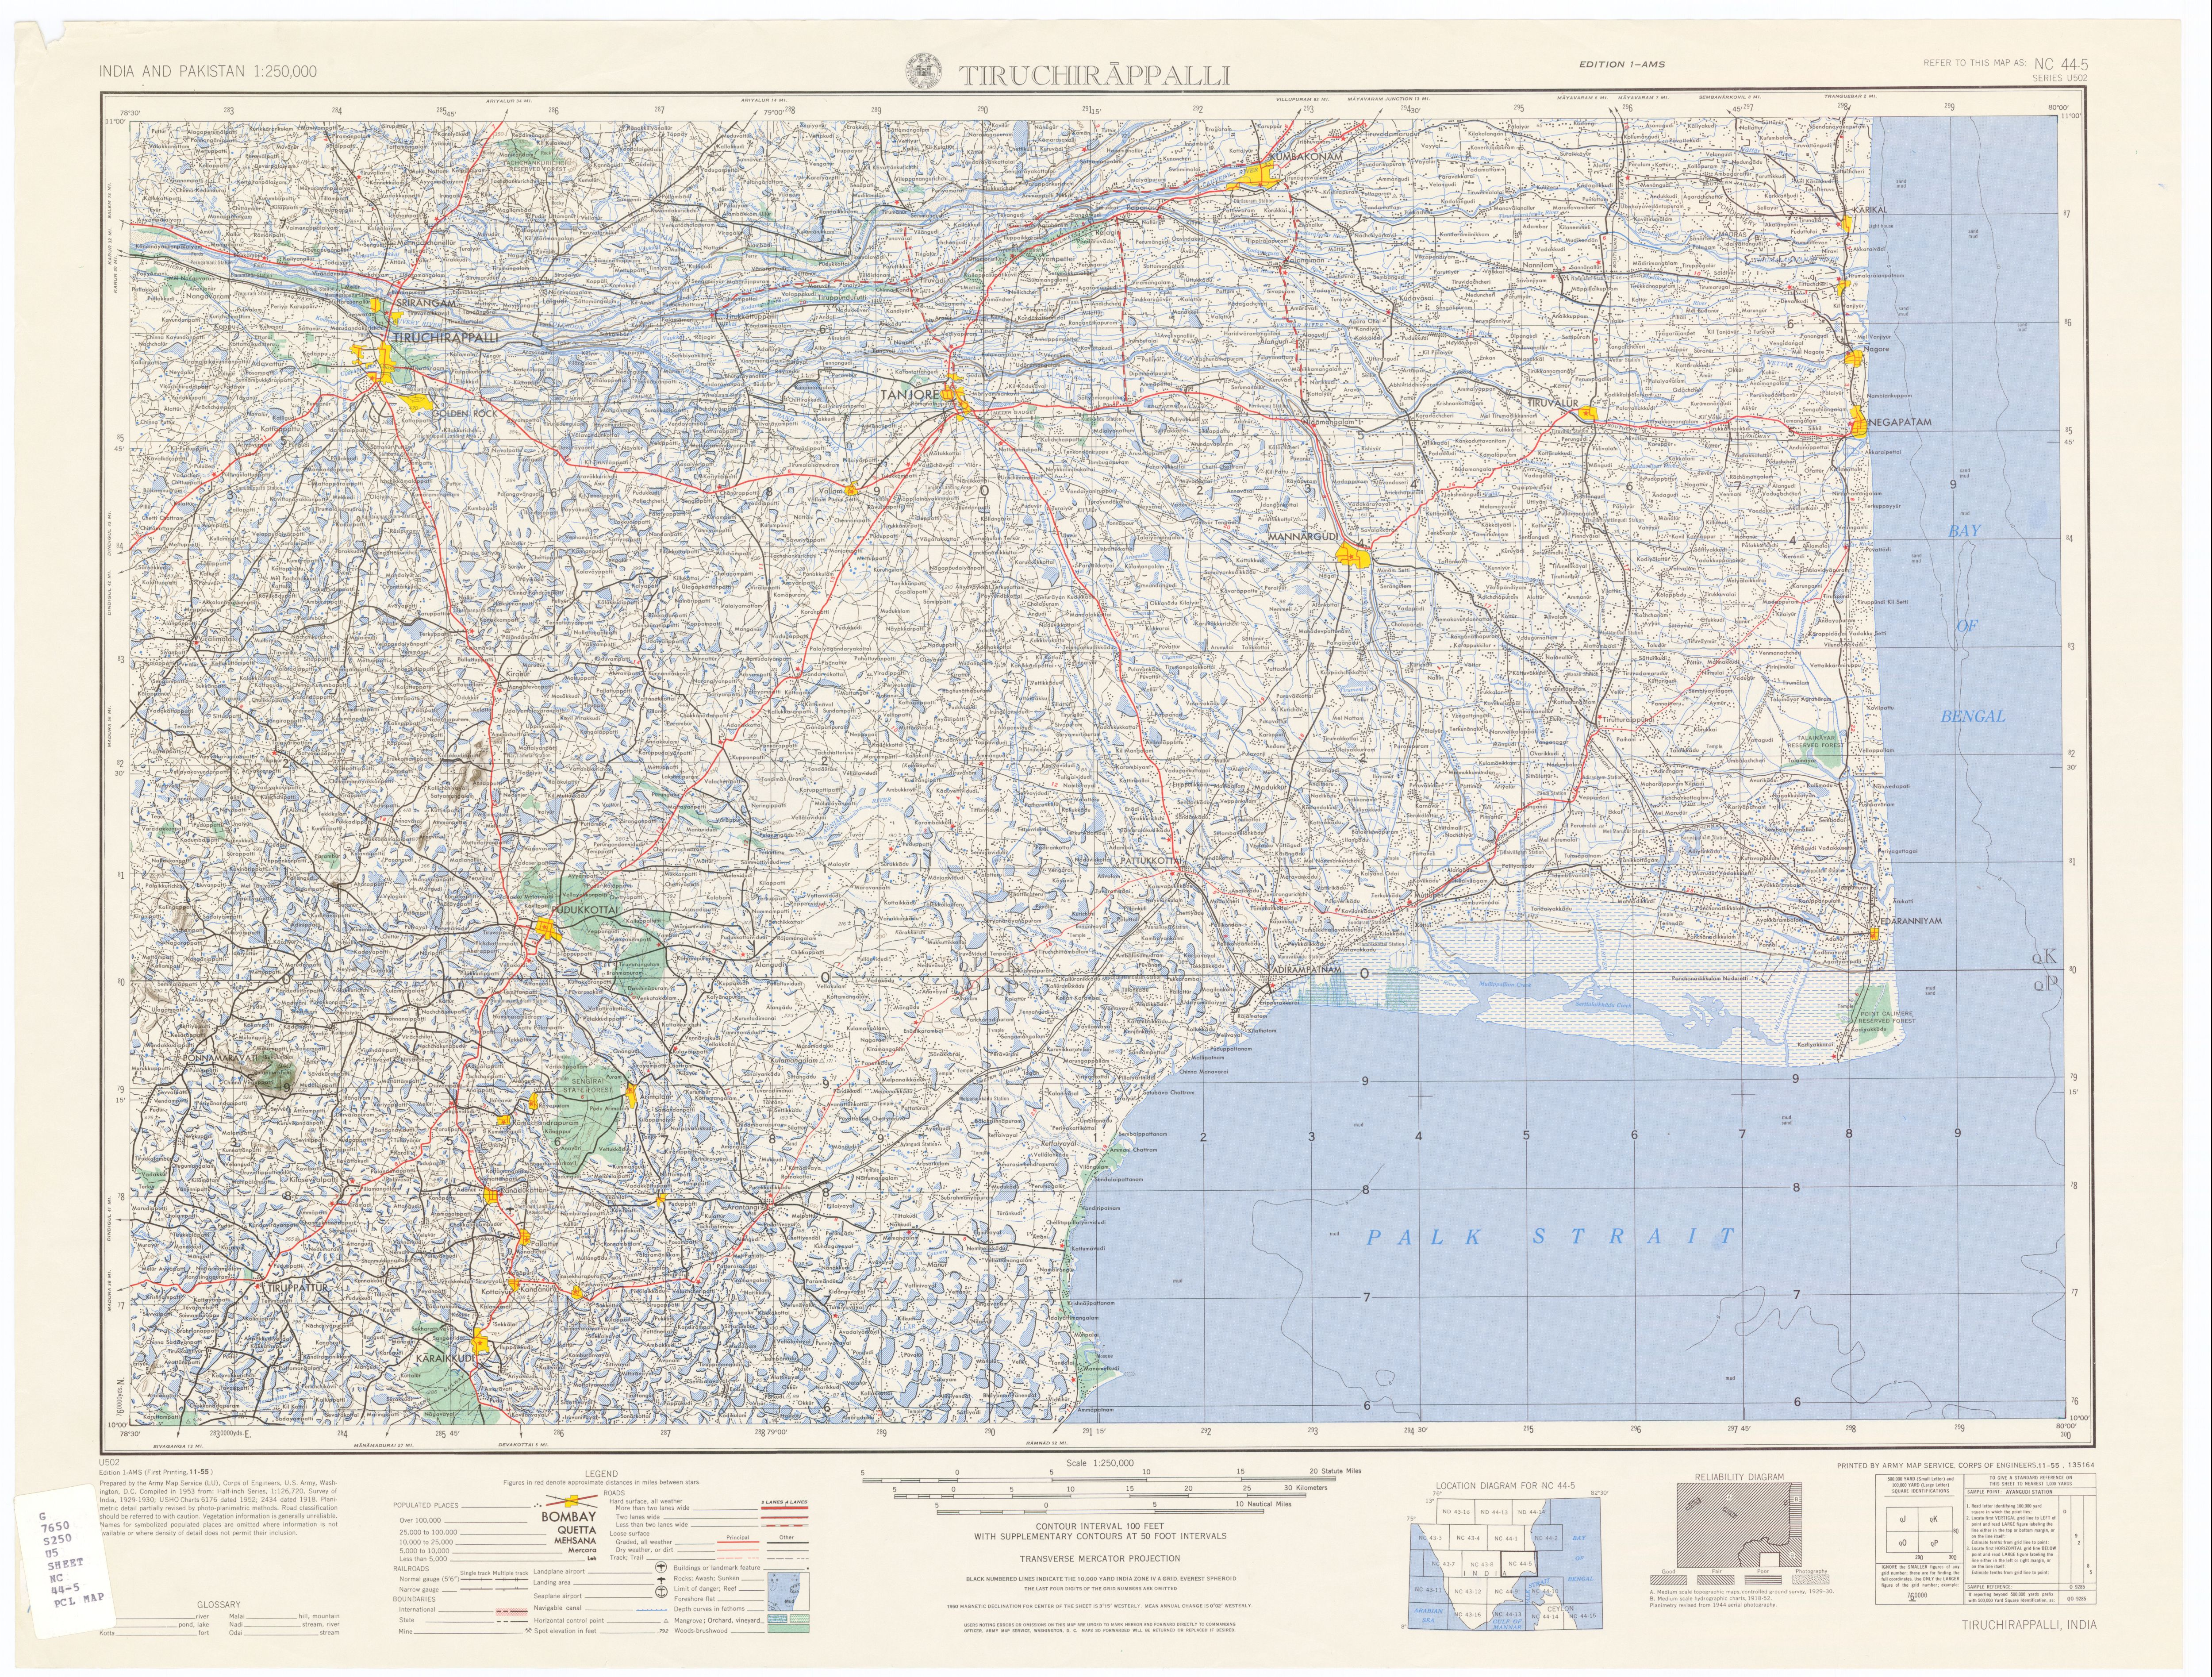 India and pakistan ams topographic maps perry castaeda map nc 44 5 tiruchirappalli gumiabroncs Gallery